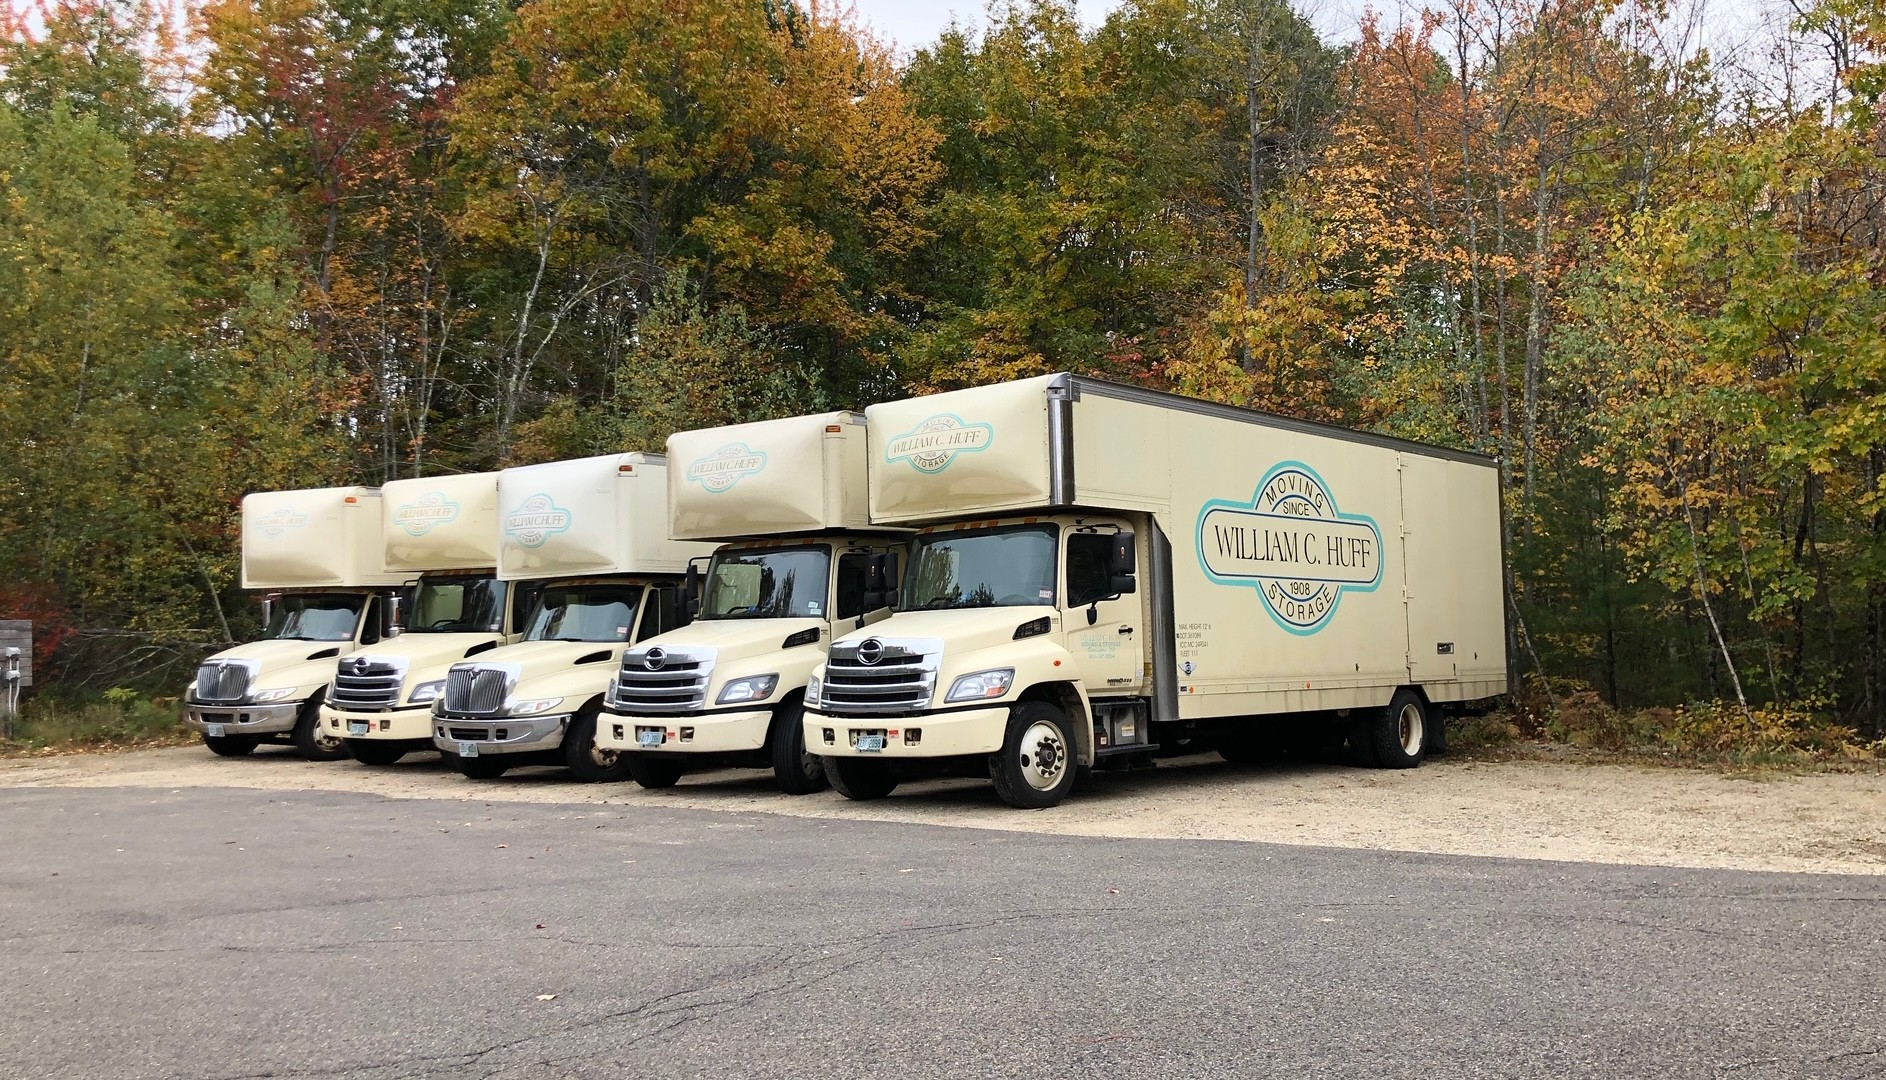 3 Ways William C. Huff Companies Maintain Their Fleet